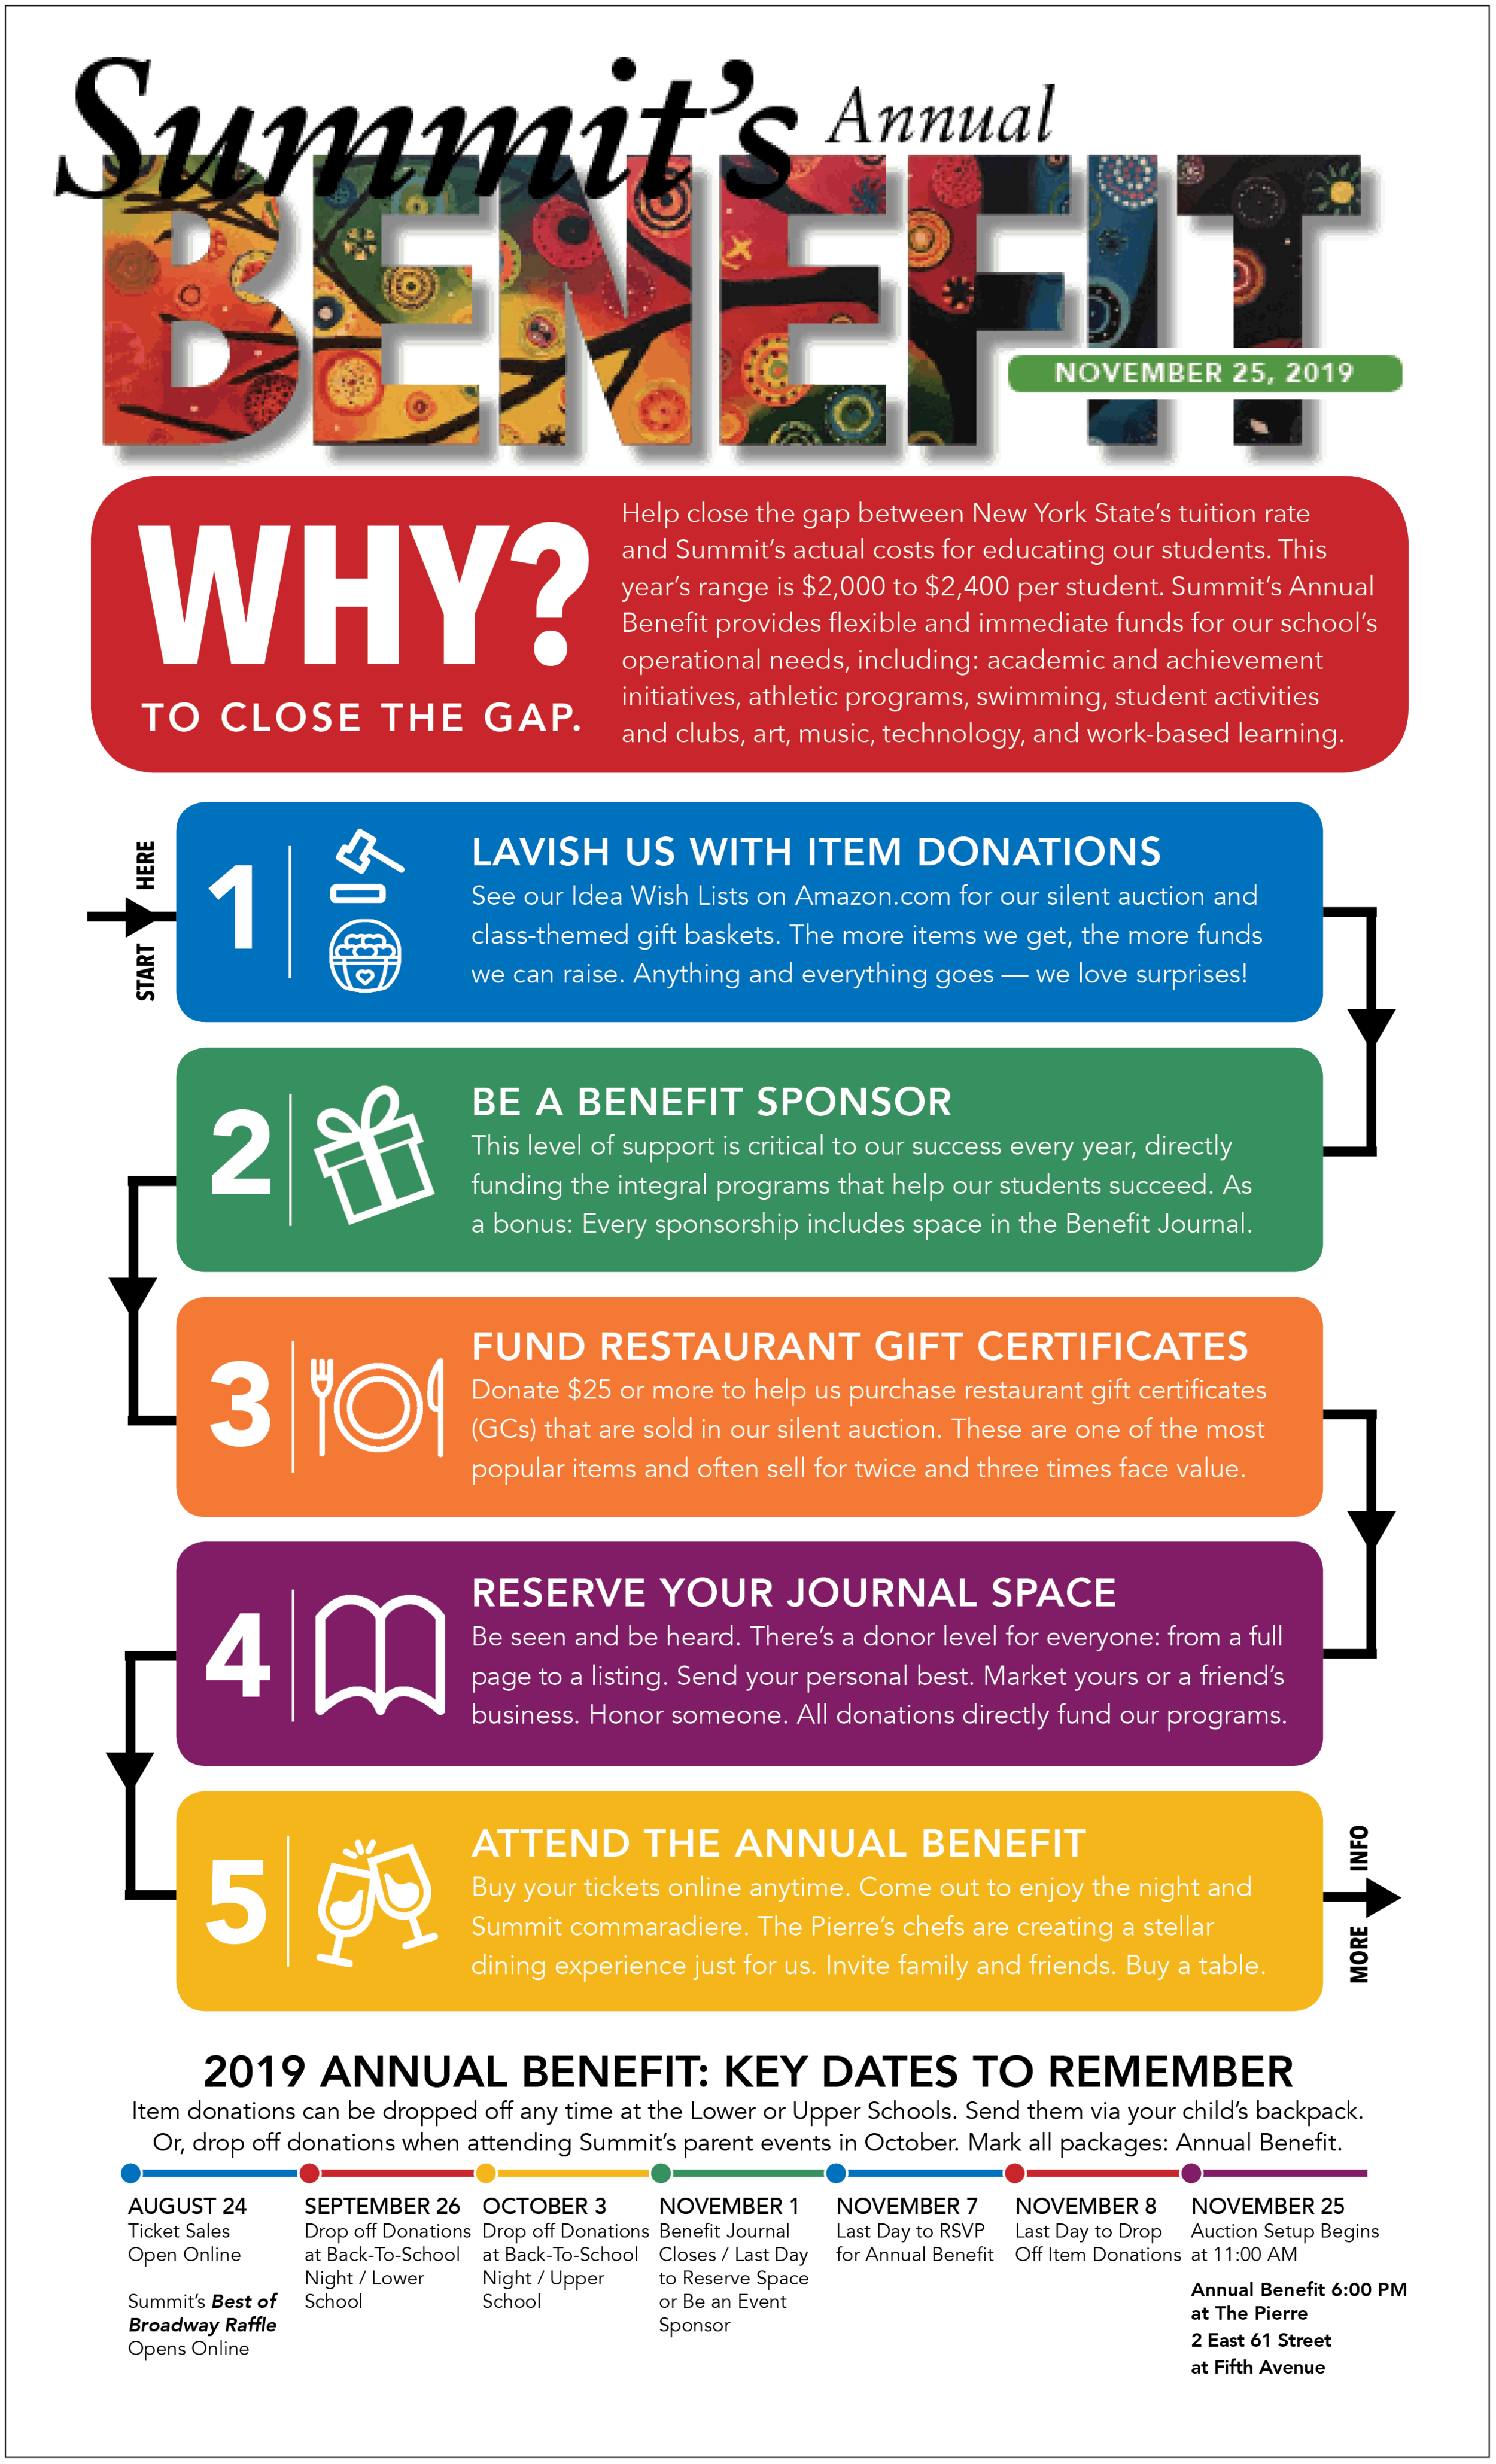 Summit_2019AB_BenefitFlyer11x14_FRONT_FINAL_R_081219.png